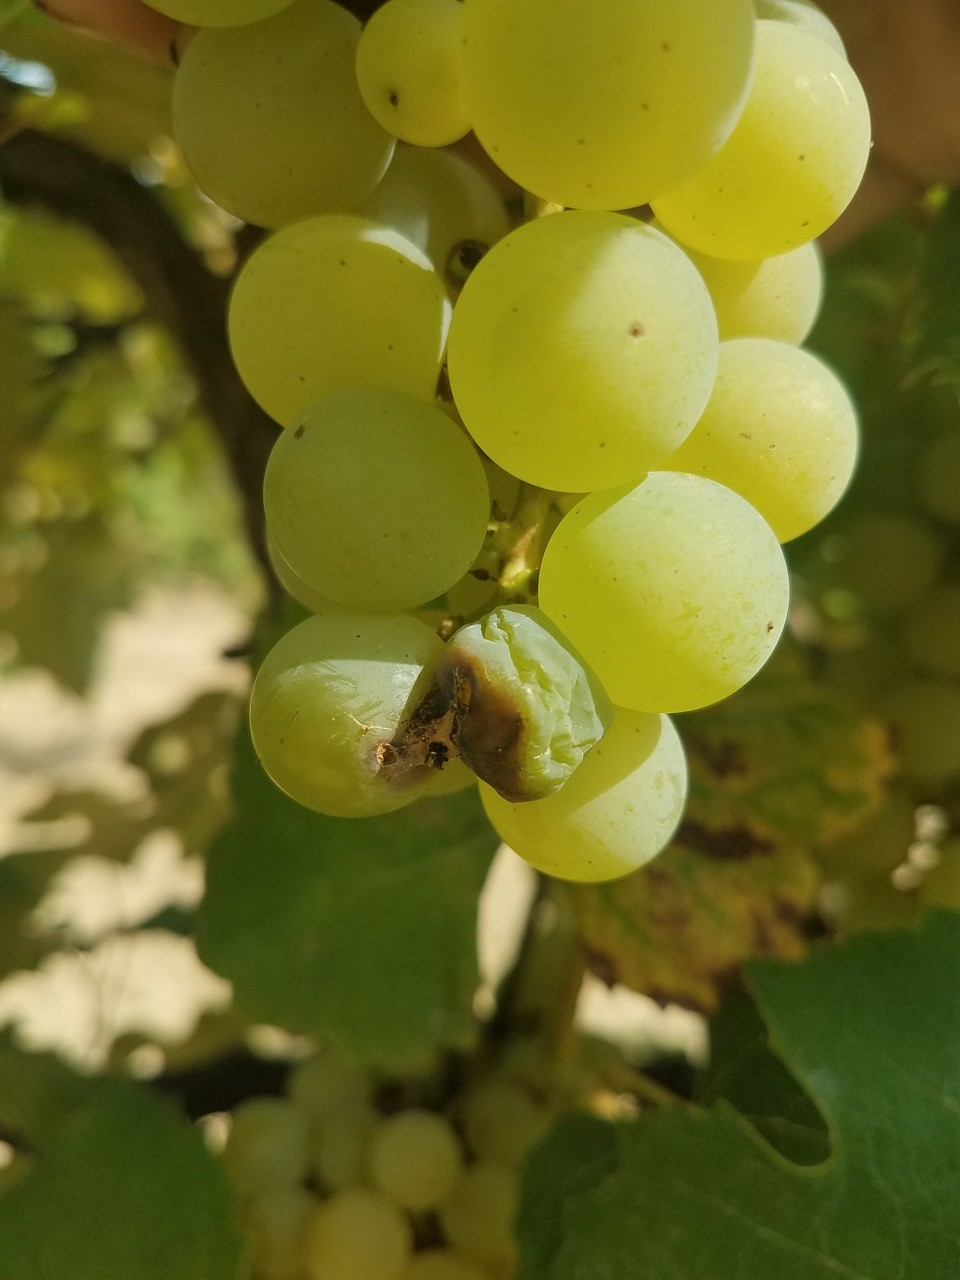 Infected Niagara grapes